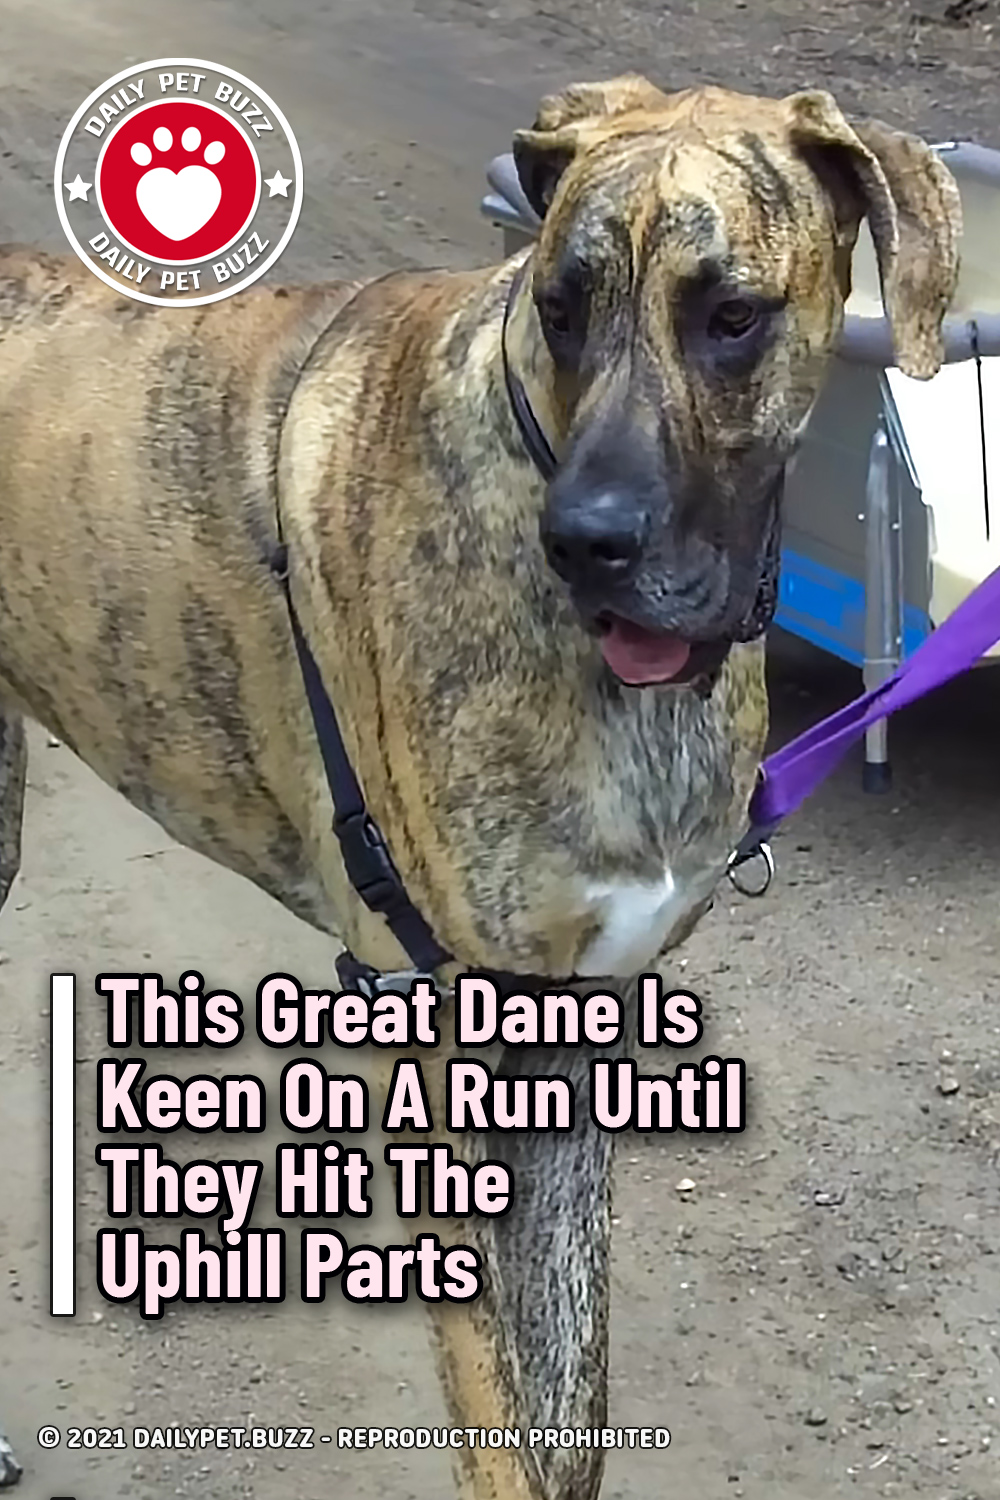 This Great Dane Is Keen On A Run Until They Hit The Uphill Parts